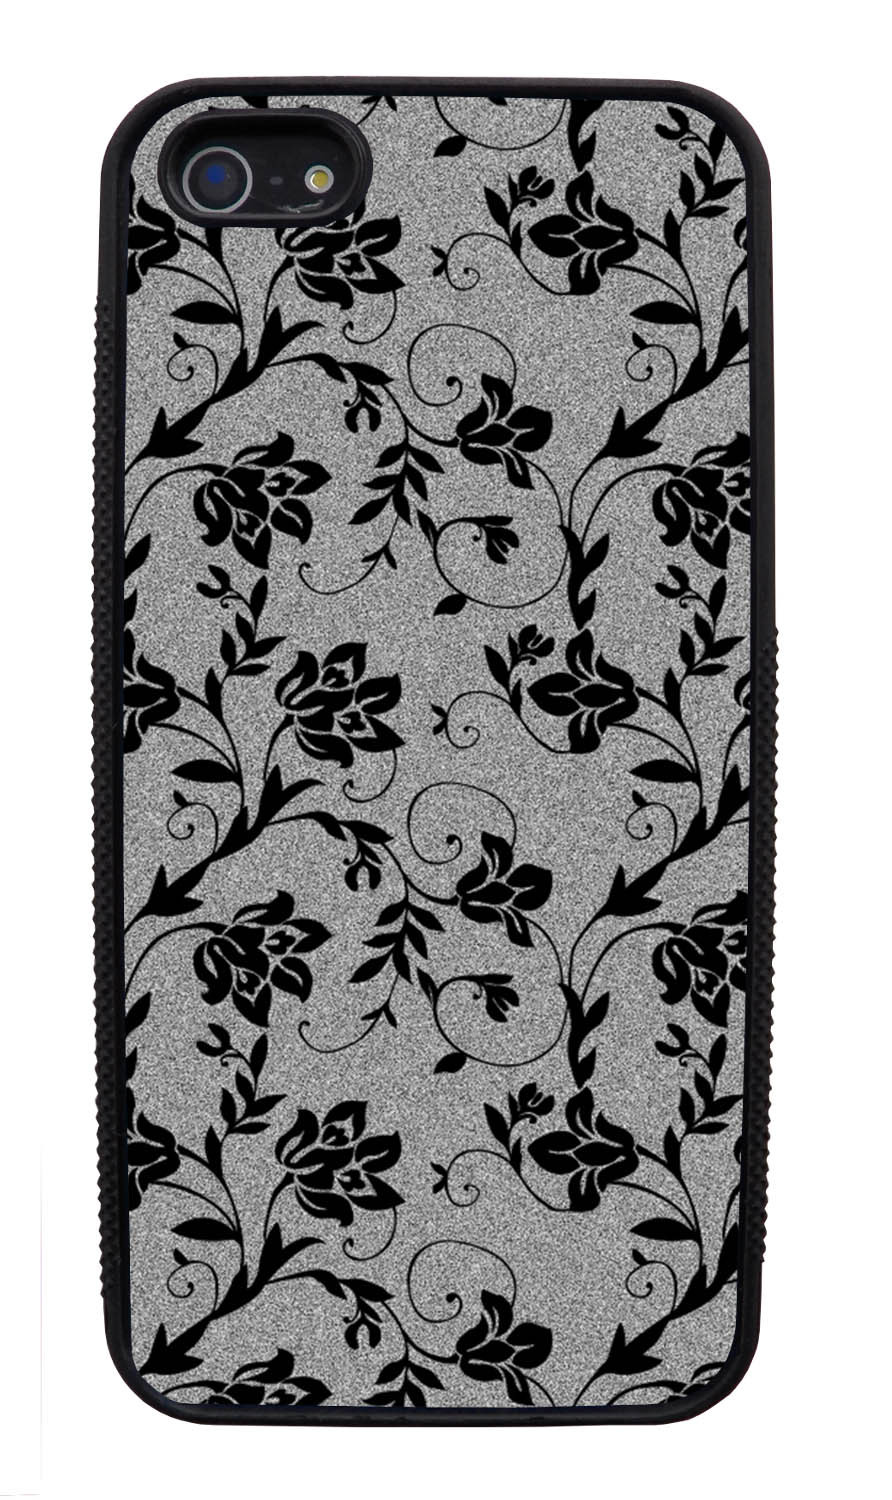 Apple iPhone 5 / 5S Flower Case - Black on Textured Grey - Stencil Cutout - Black Slim Rubber Case